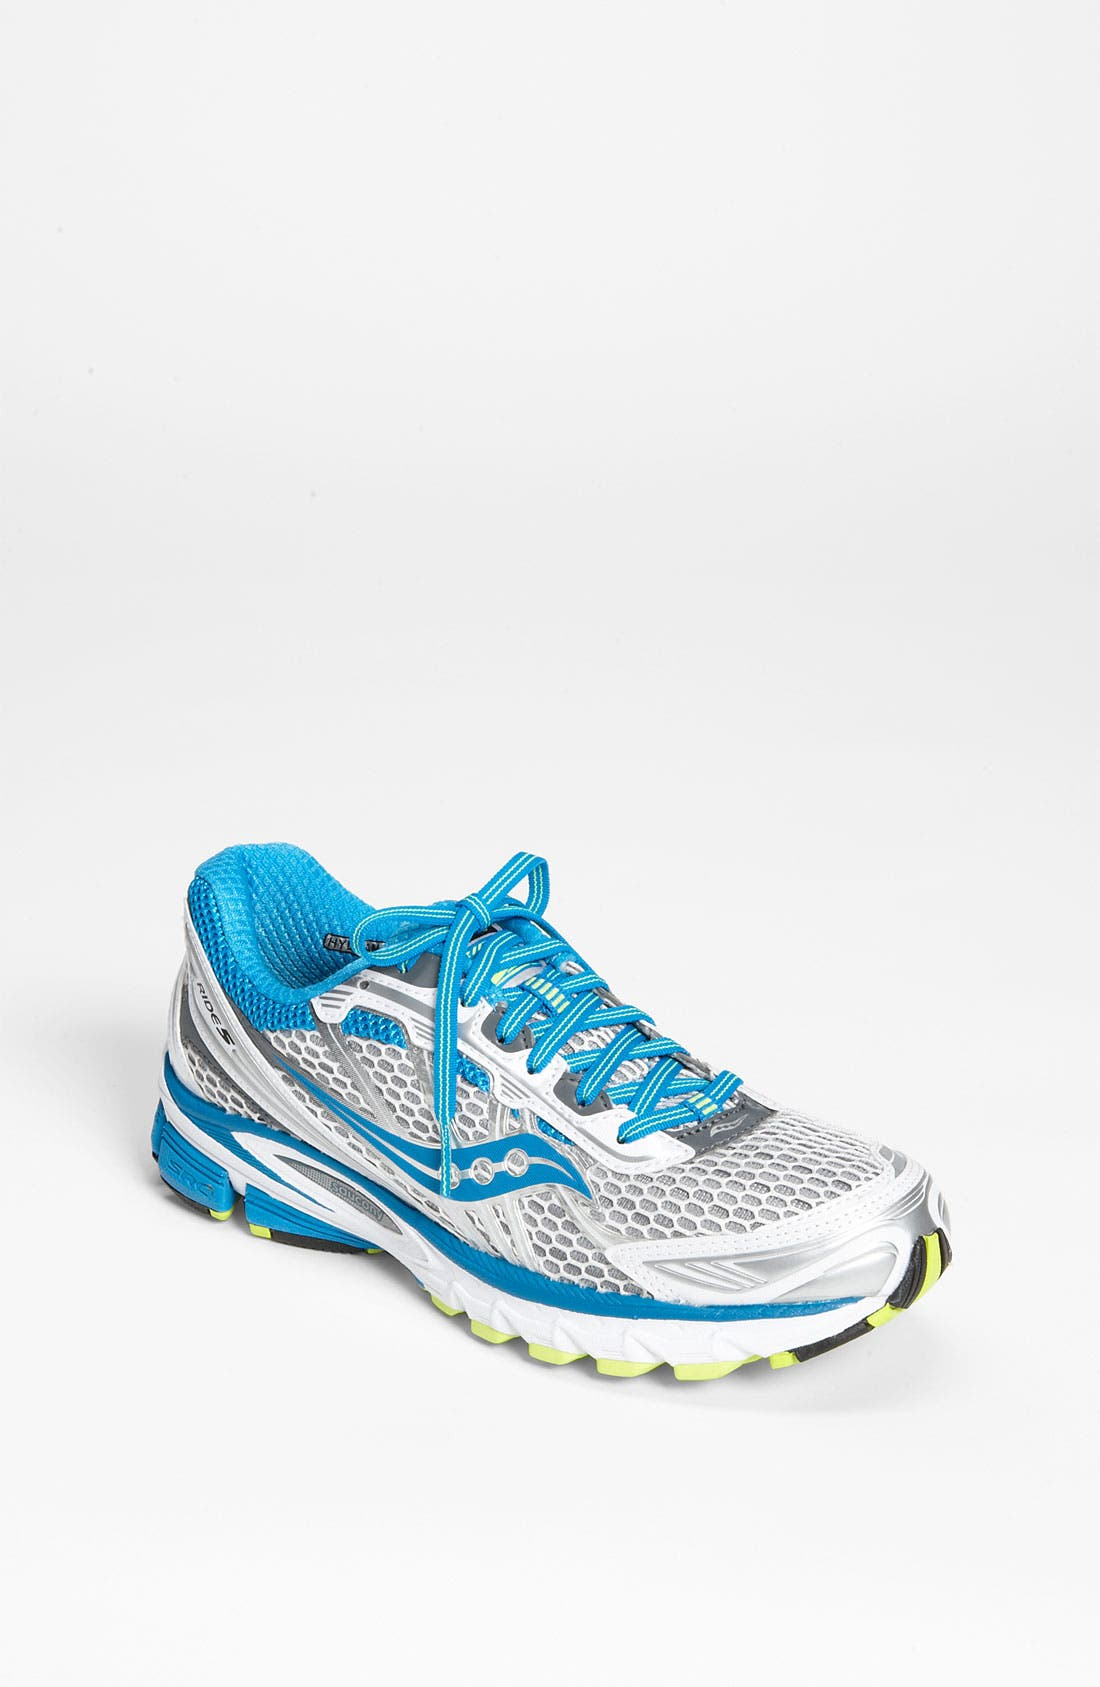 Main Image - Saucony 'ProGrid Ride 5' Running Shoe (Women)